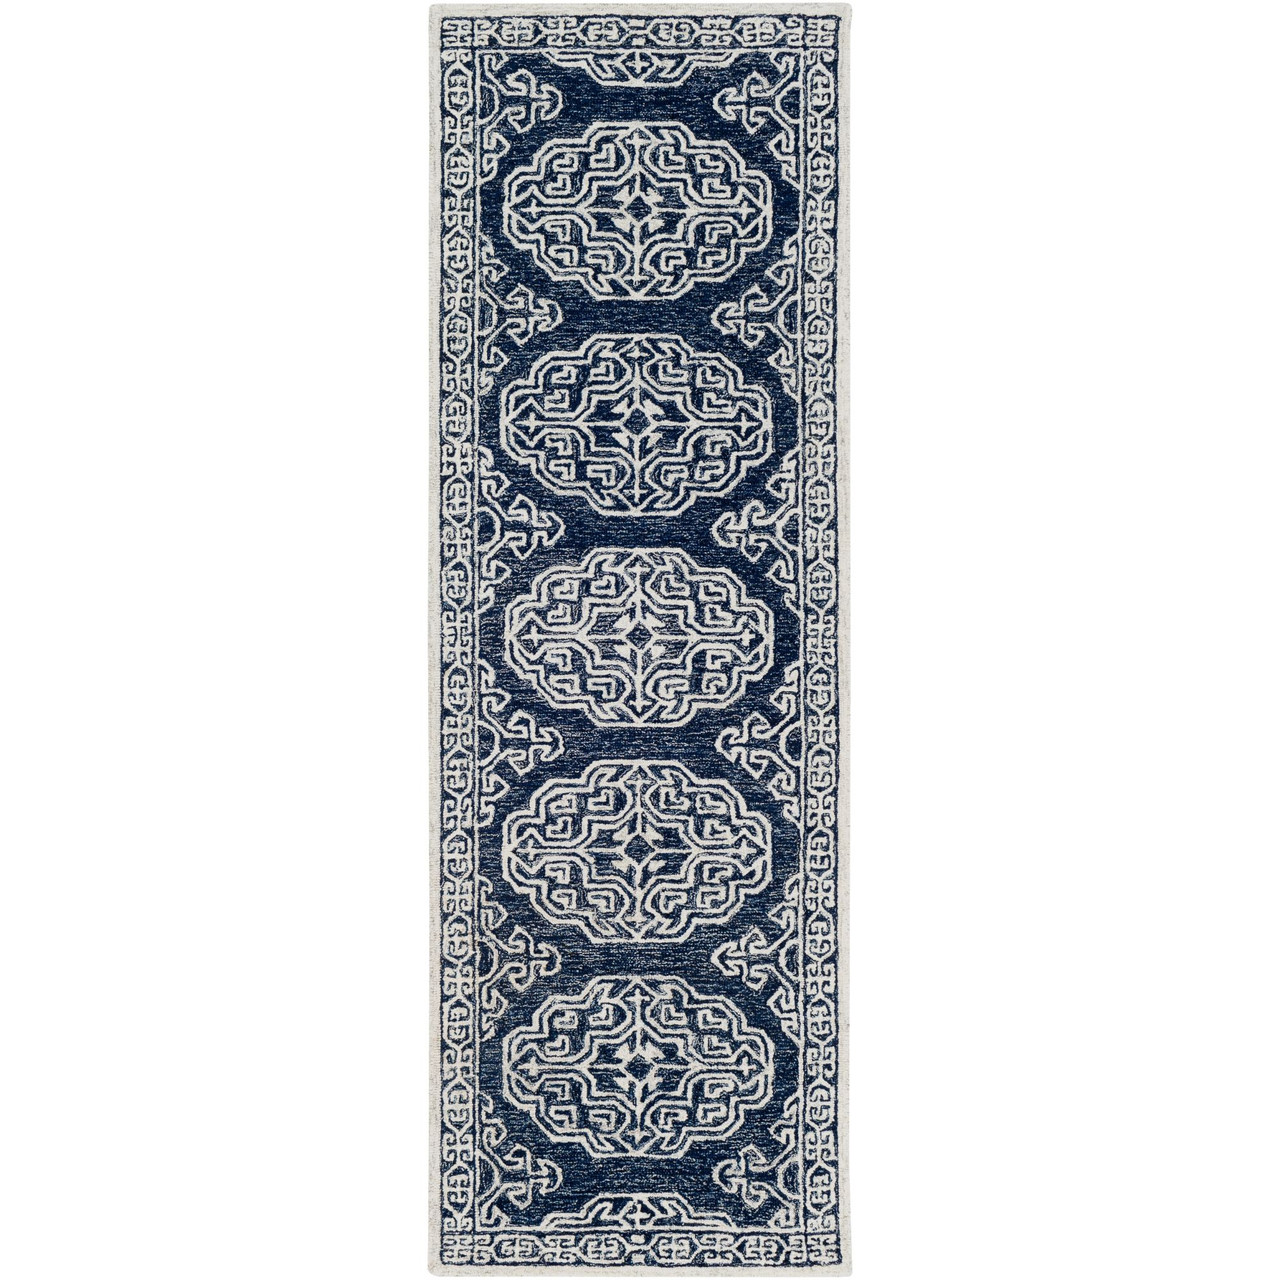 2 5 X 8 Contemporary Style Navy Blue Cream White Rectangular Hand Tufted Wool Area Rug Runner Christmas Central